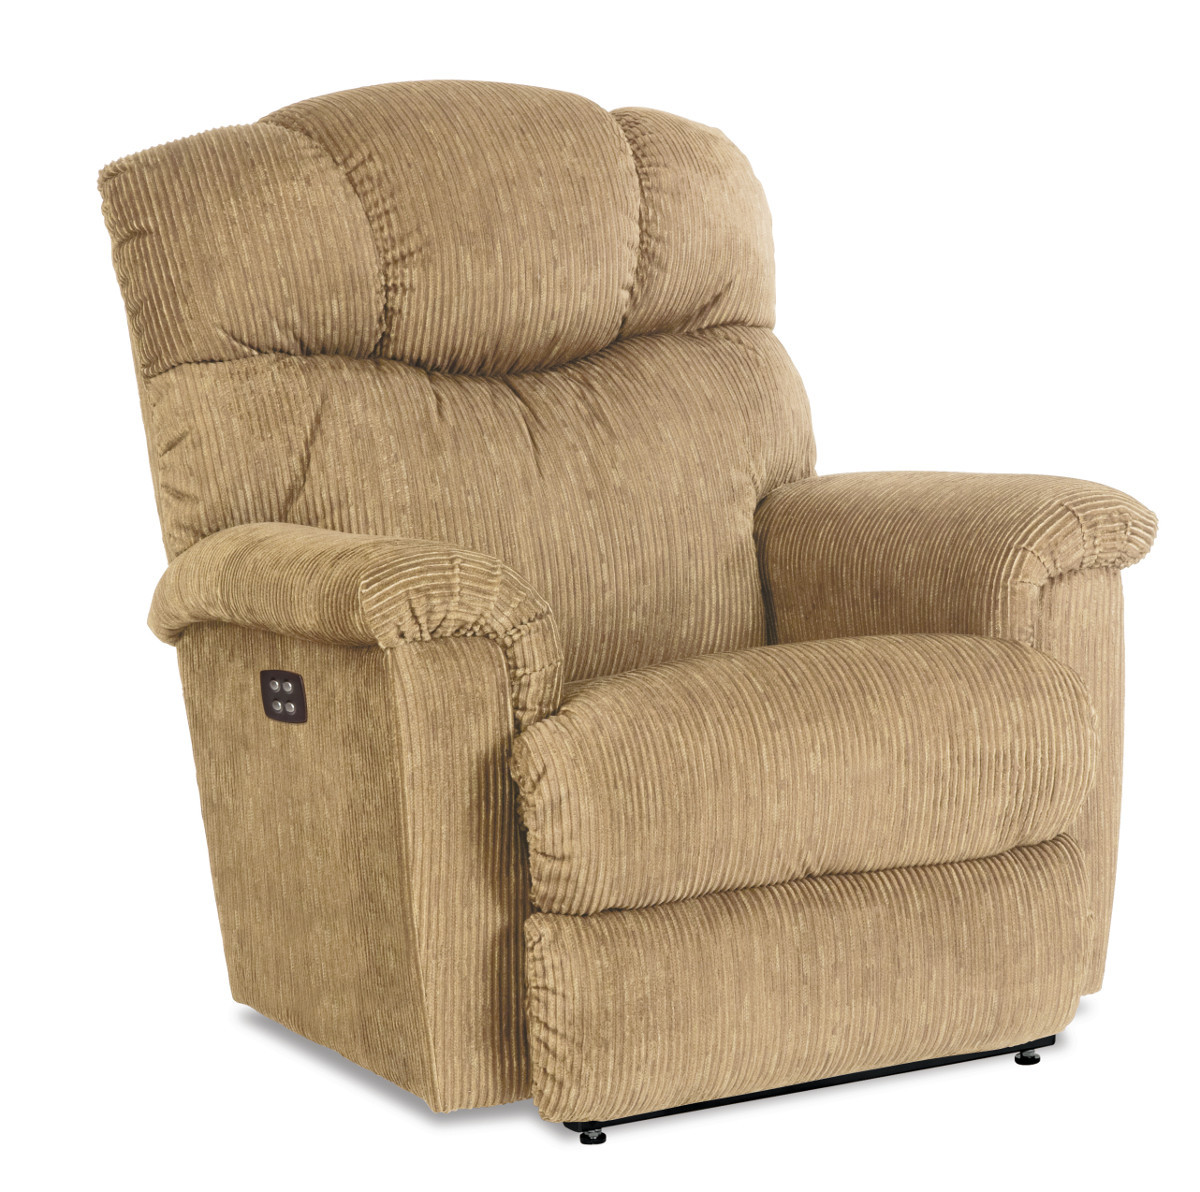 The Lancer Reclina Way Recliner Sold At Rose Brothers Furniture Serving Wilmington And